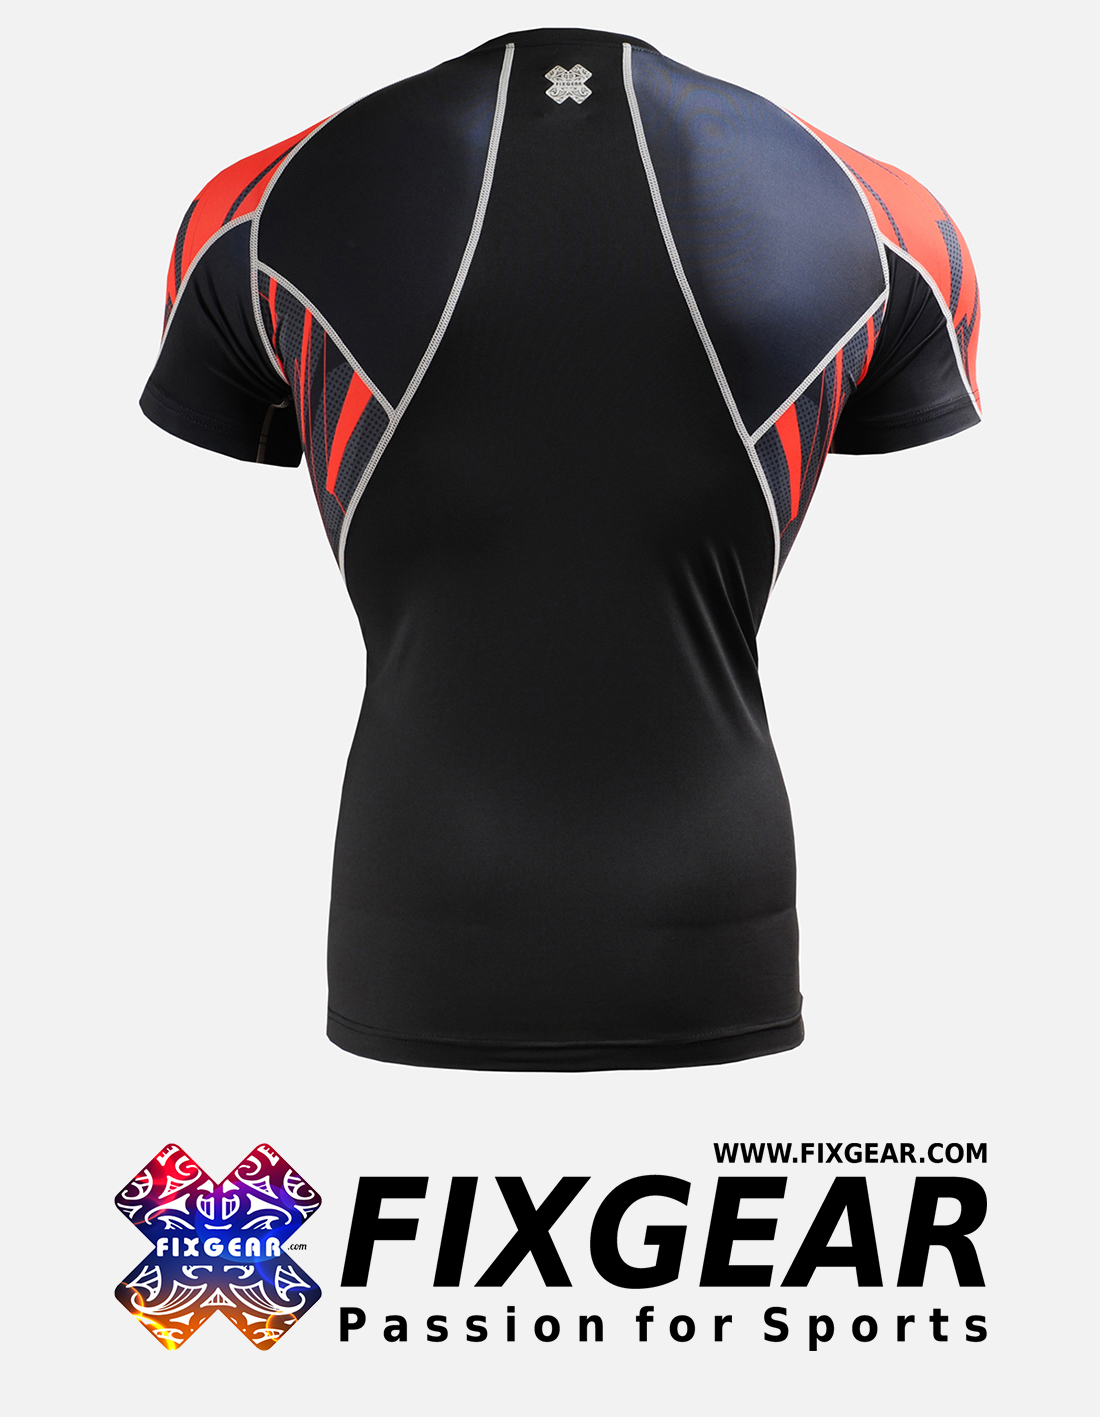 FIXGEAR C2S-B68 Compression Base Layer Shirt Short Sleeve